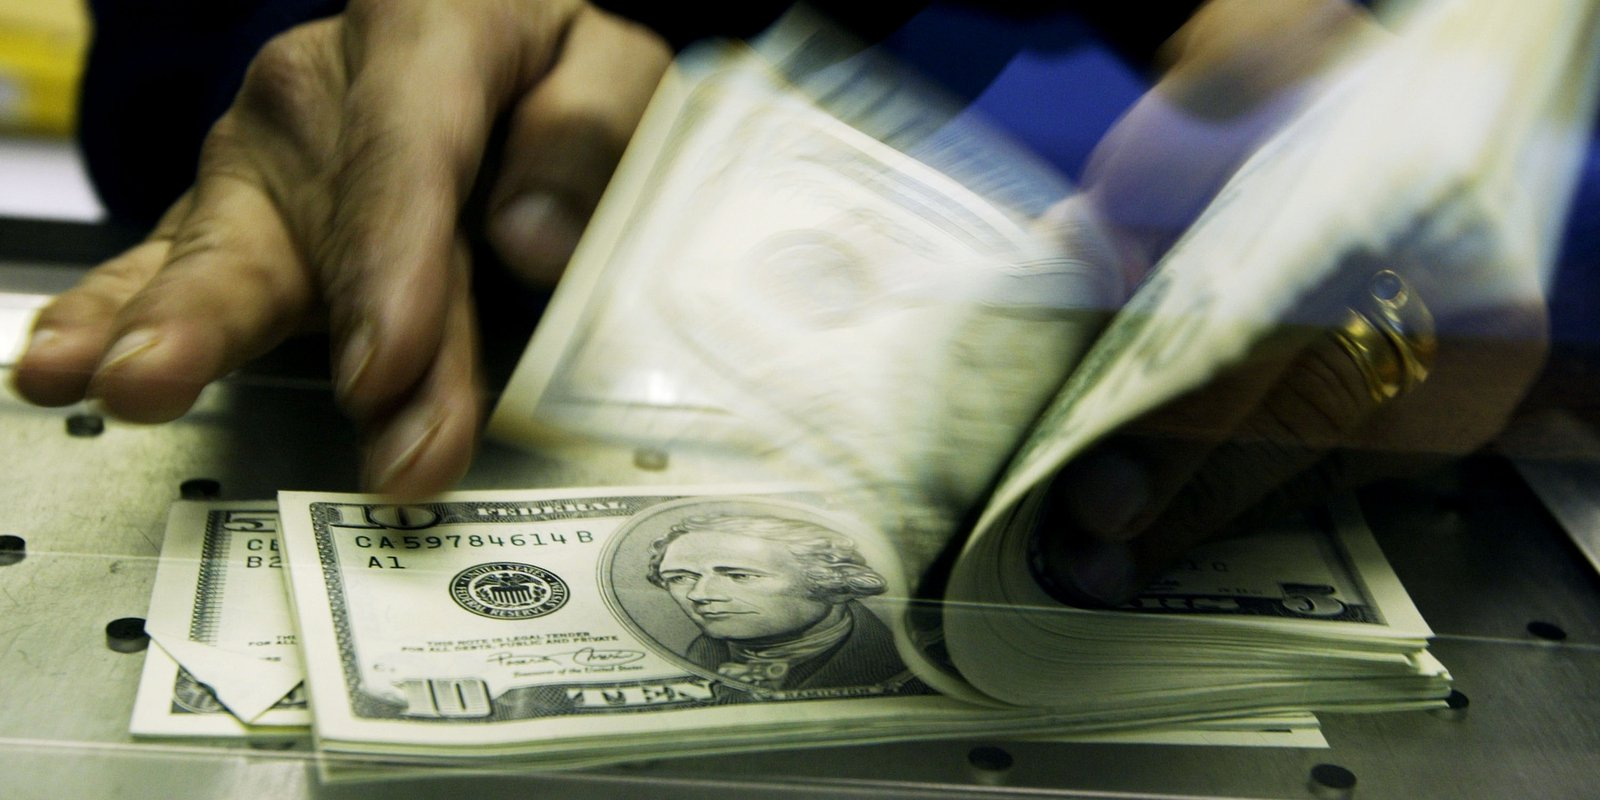 Image — CountingUSdollars at a currencyexchange. Photo by Ian Waldie/Getty Images.